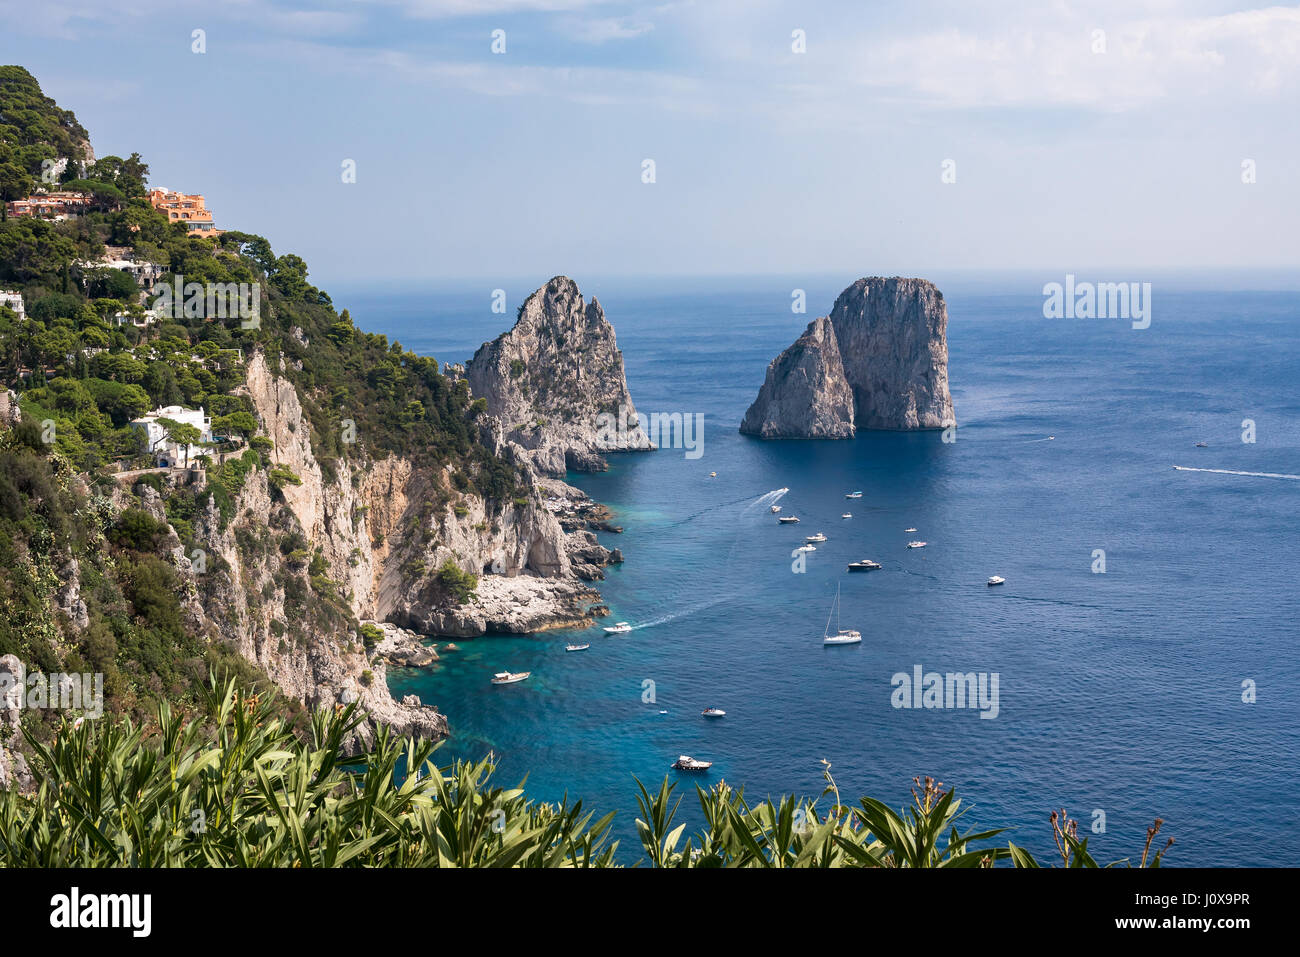 View of cliff coast of Capri Island with famous faraglioni rocks, Campania, Italy - Stock Image